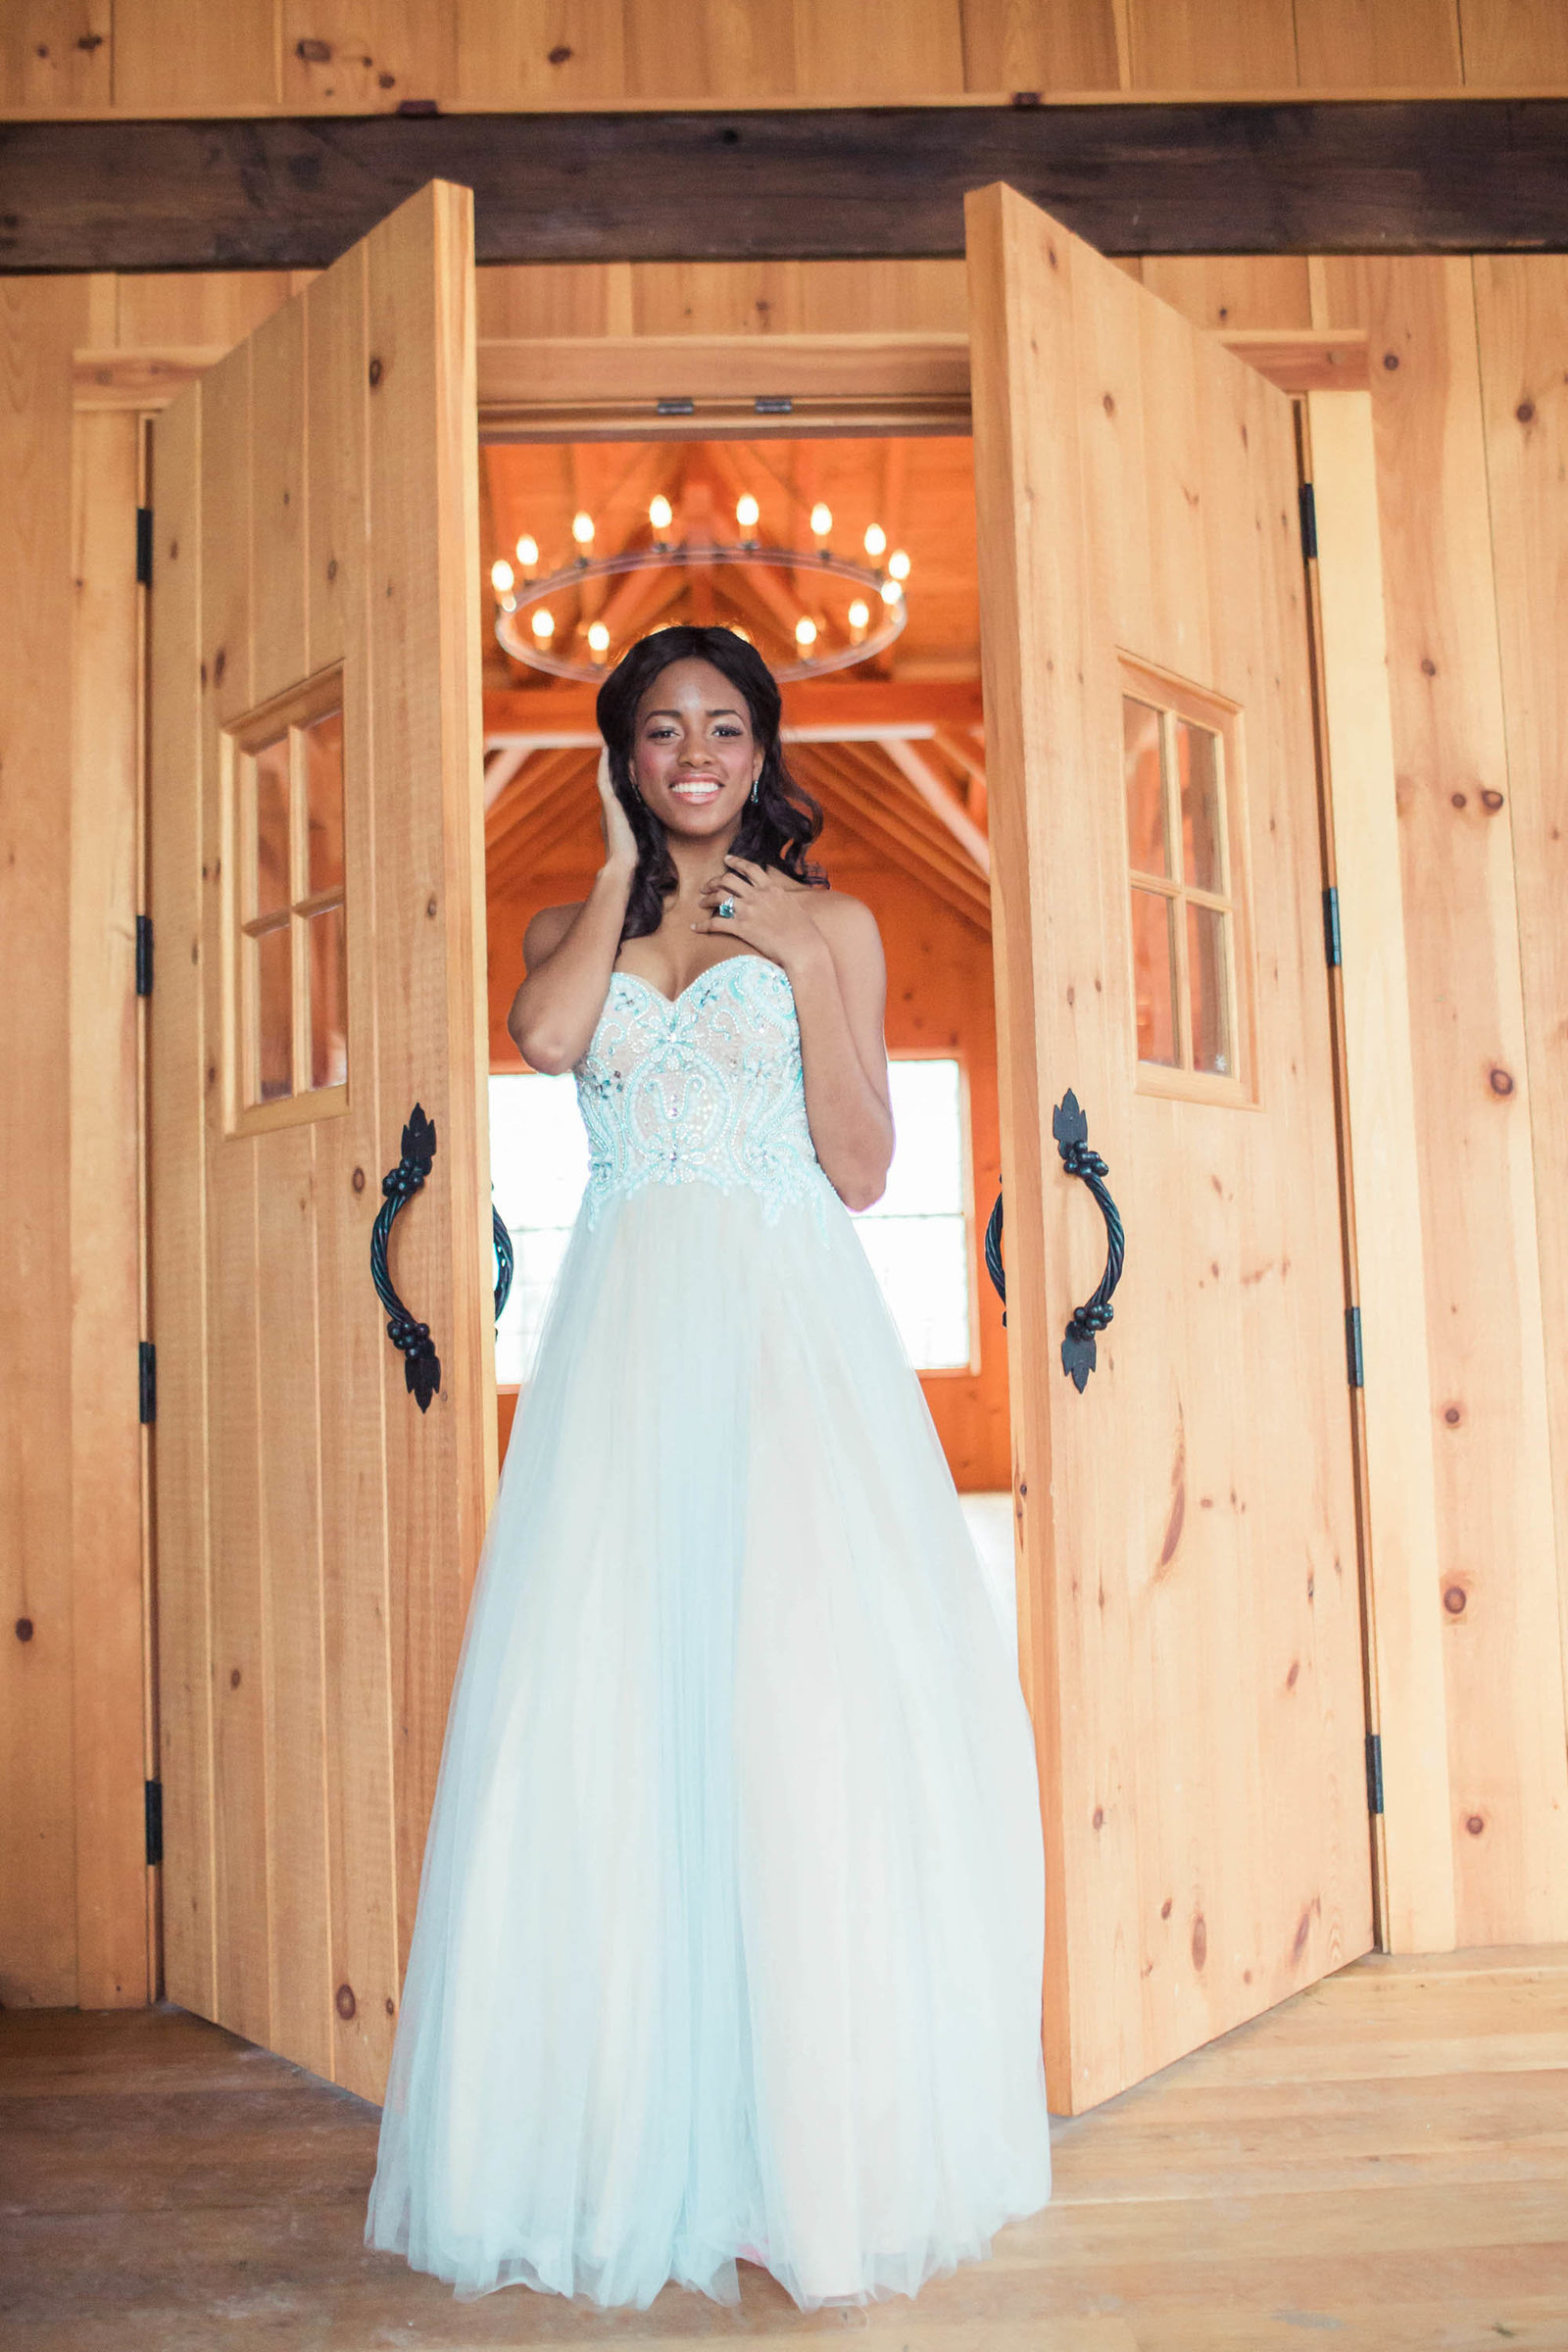 terani-mint-sweetwater-farm-winery-philadelphia-fashion-delaware-main-line-today-magazine-bridal-editorial-photography-kate-timbers235